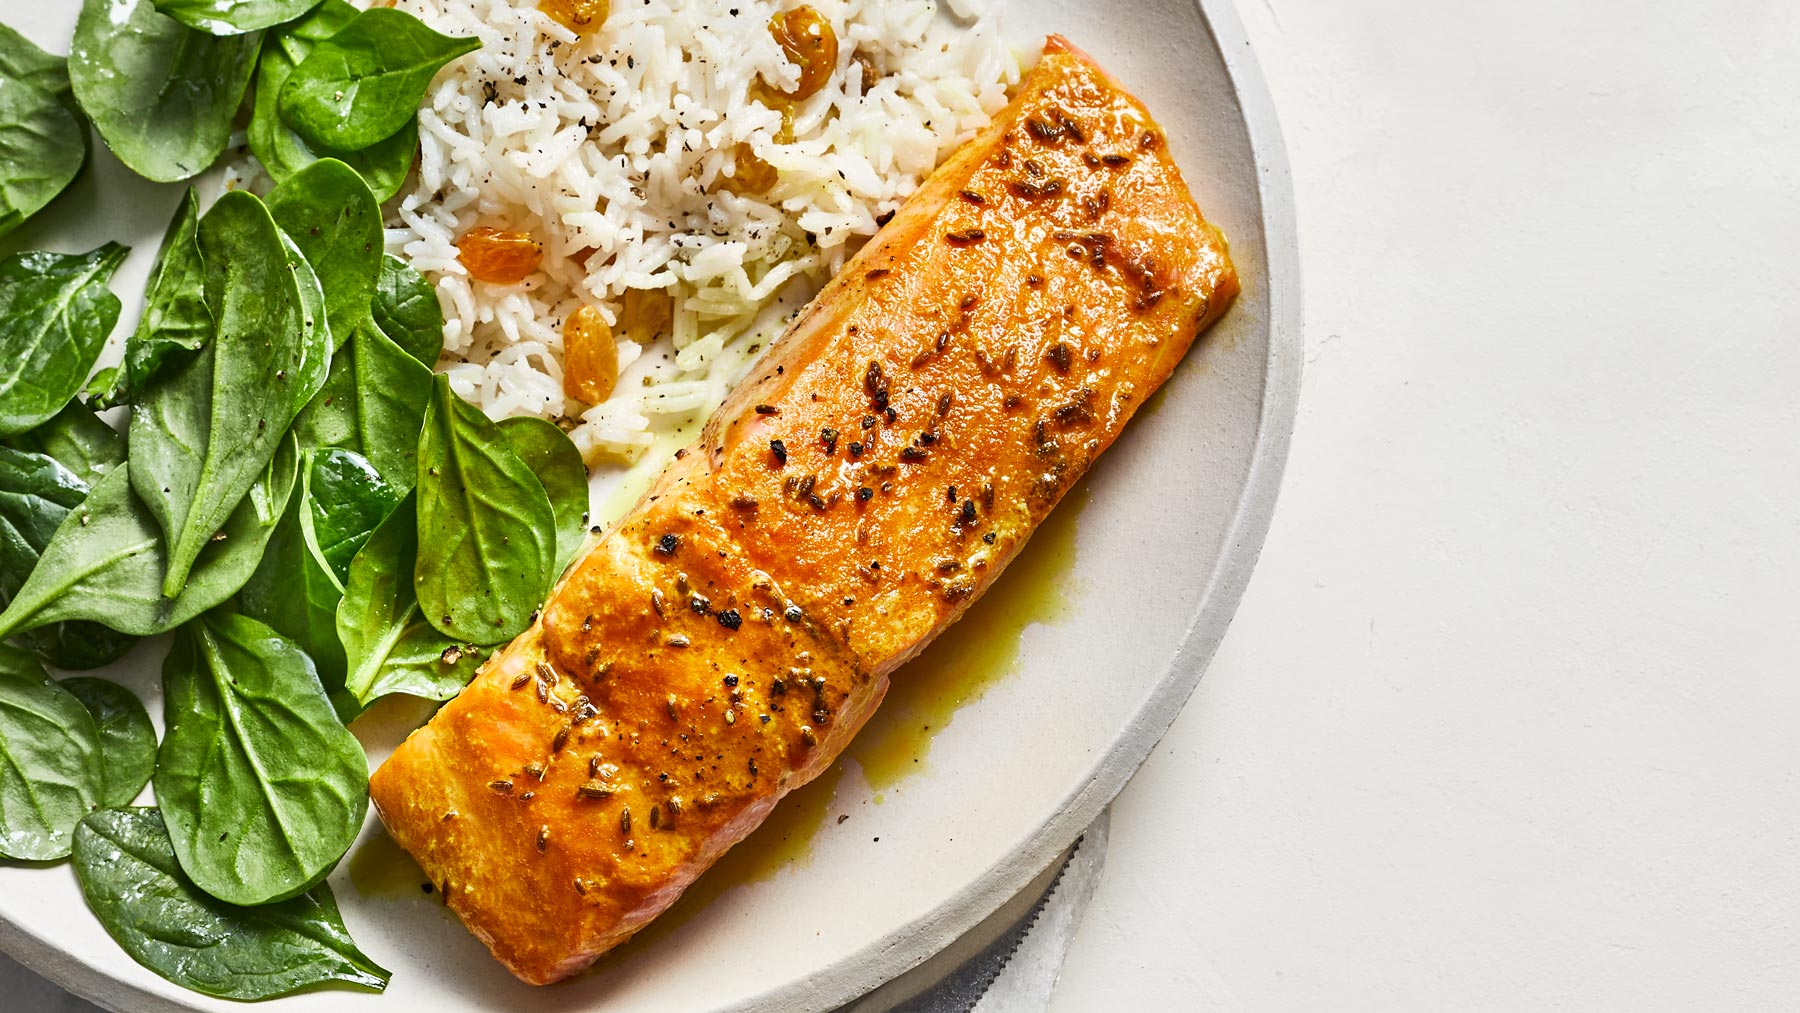 Roasted Spiced Salmon Recipe